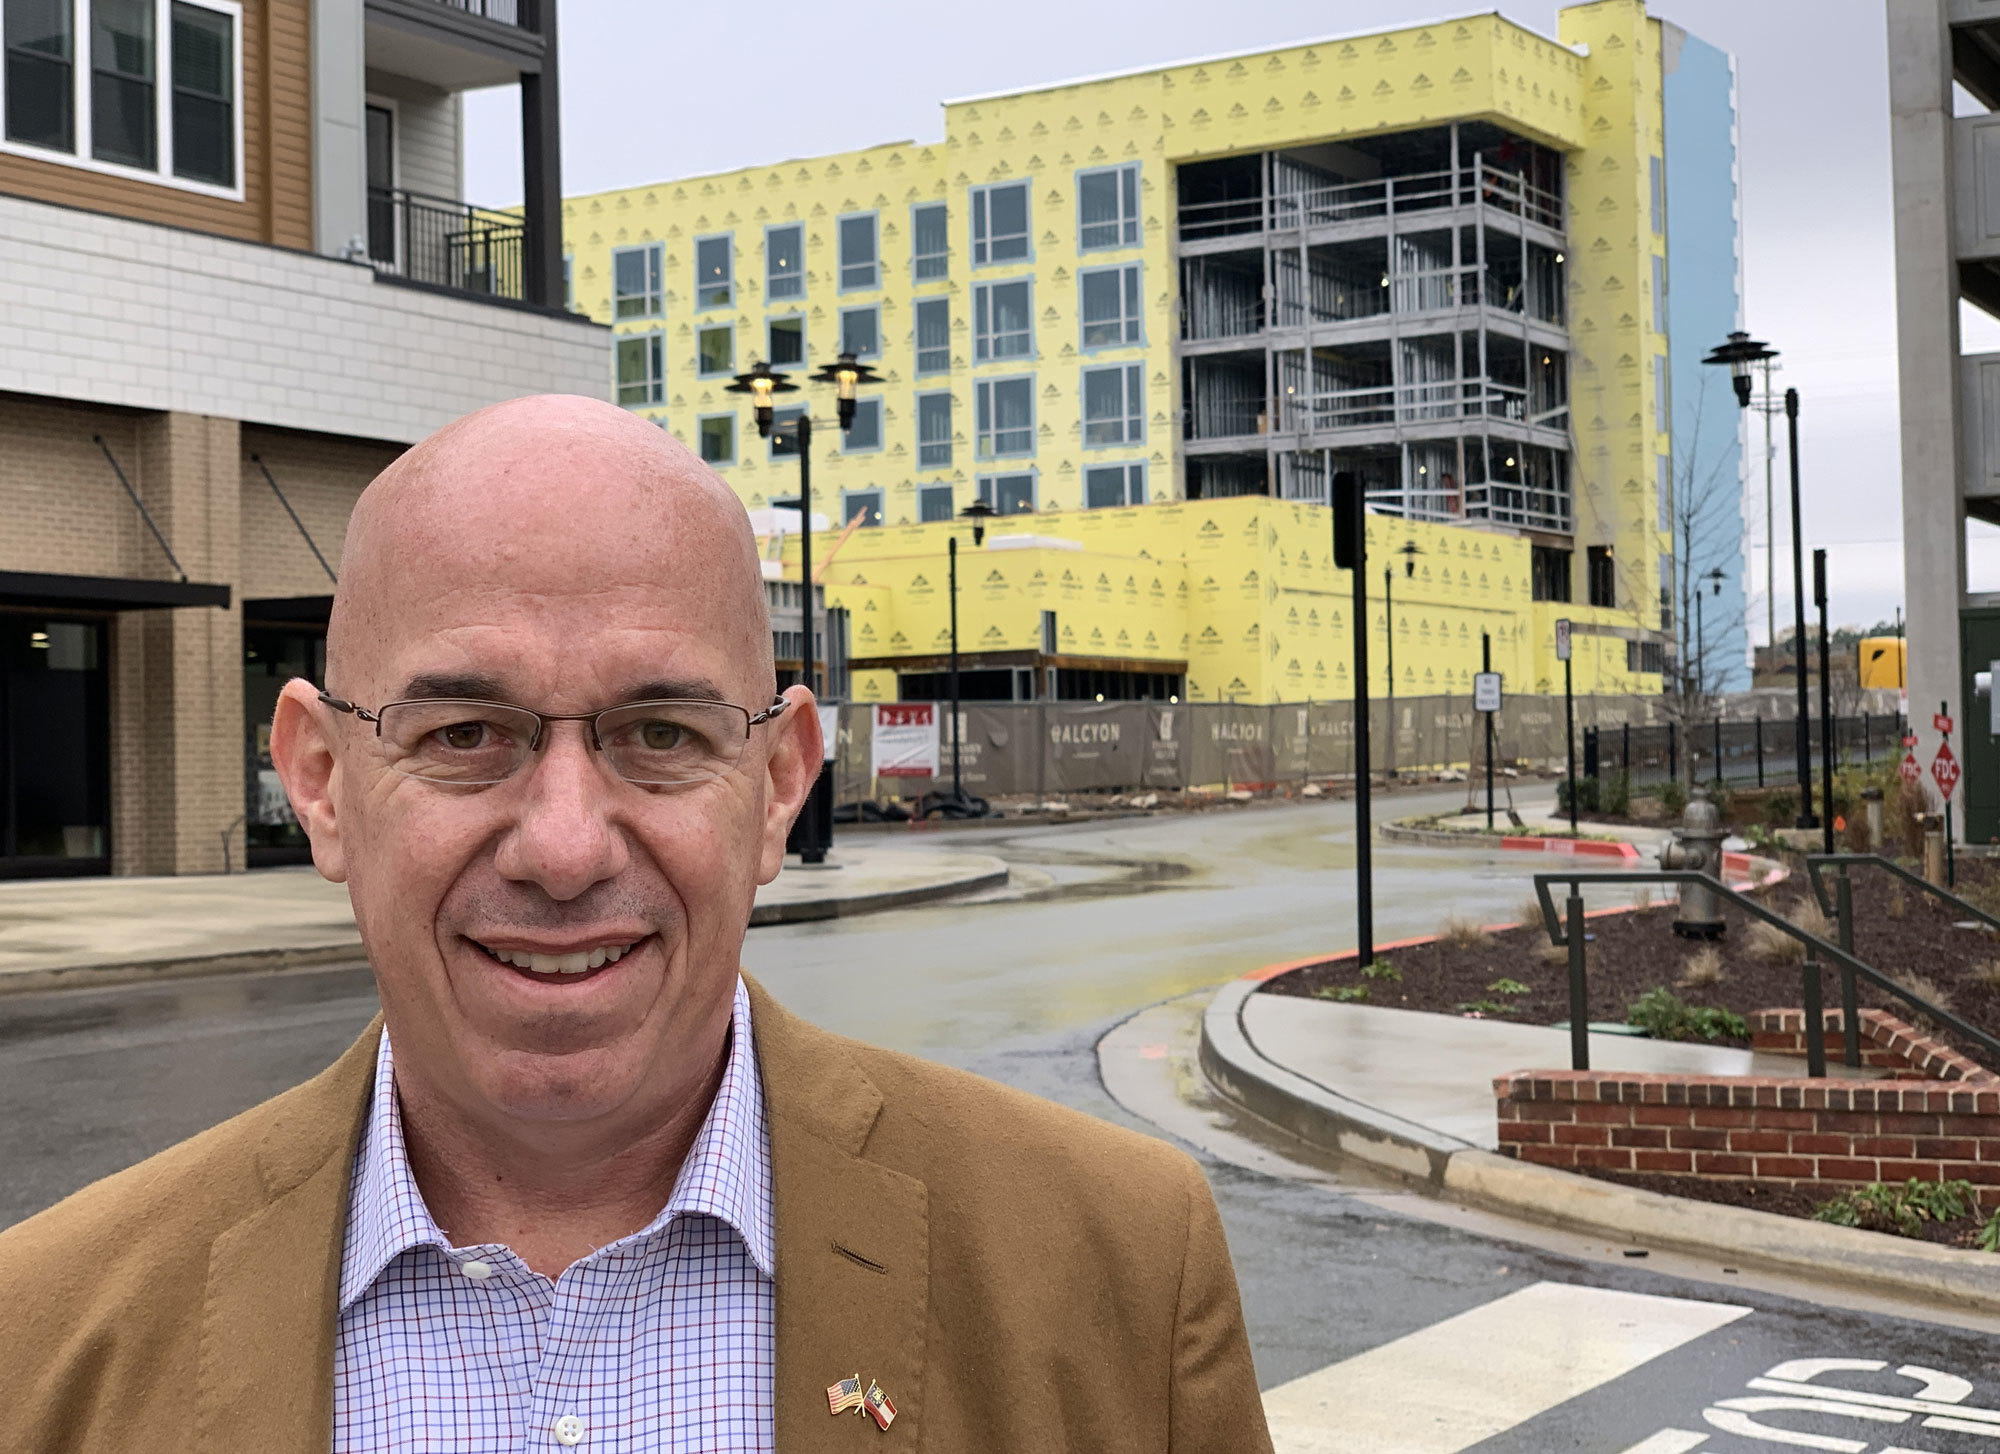 Carter Patterson, seen in one of Forsyth's new construction developments, says the region's new diversity is a great asset. (Alexander Panetta/CBC)